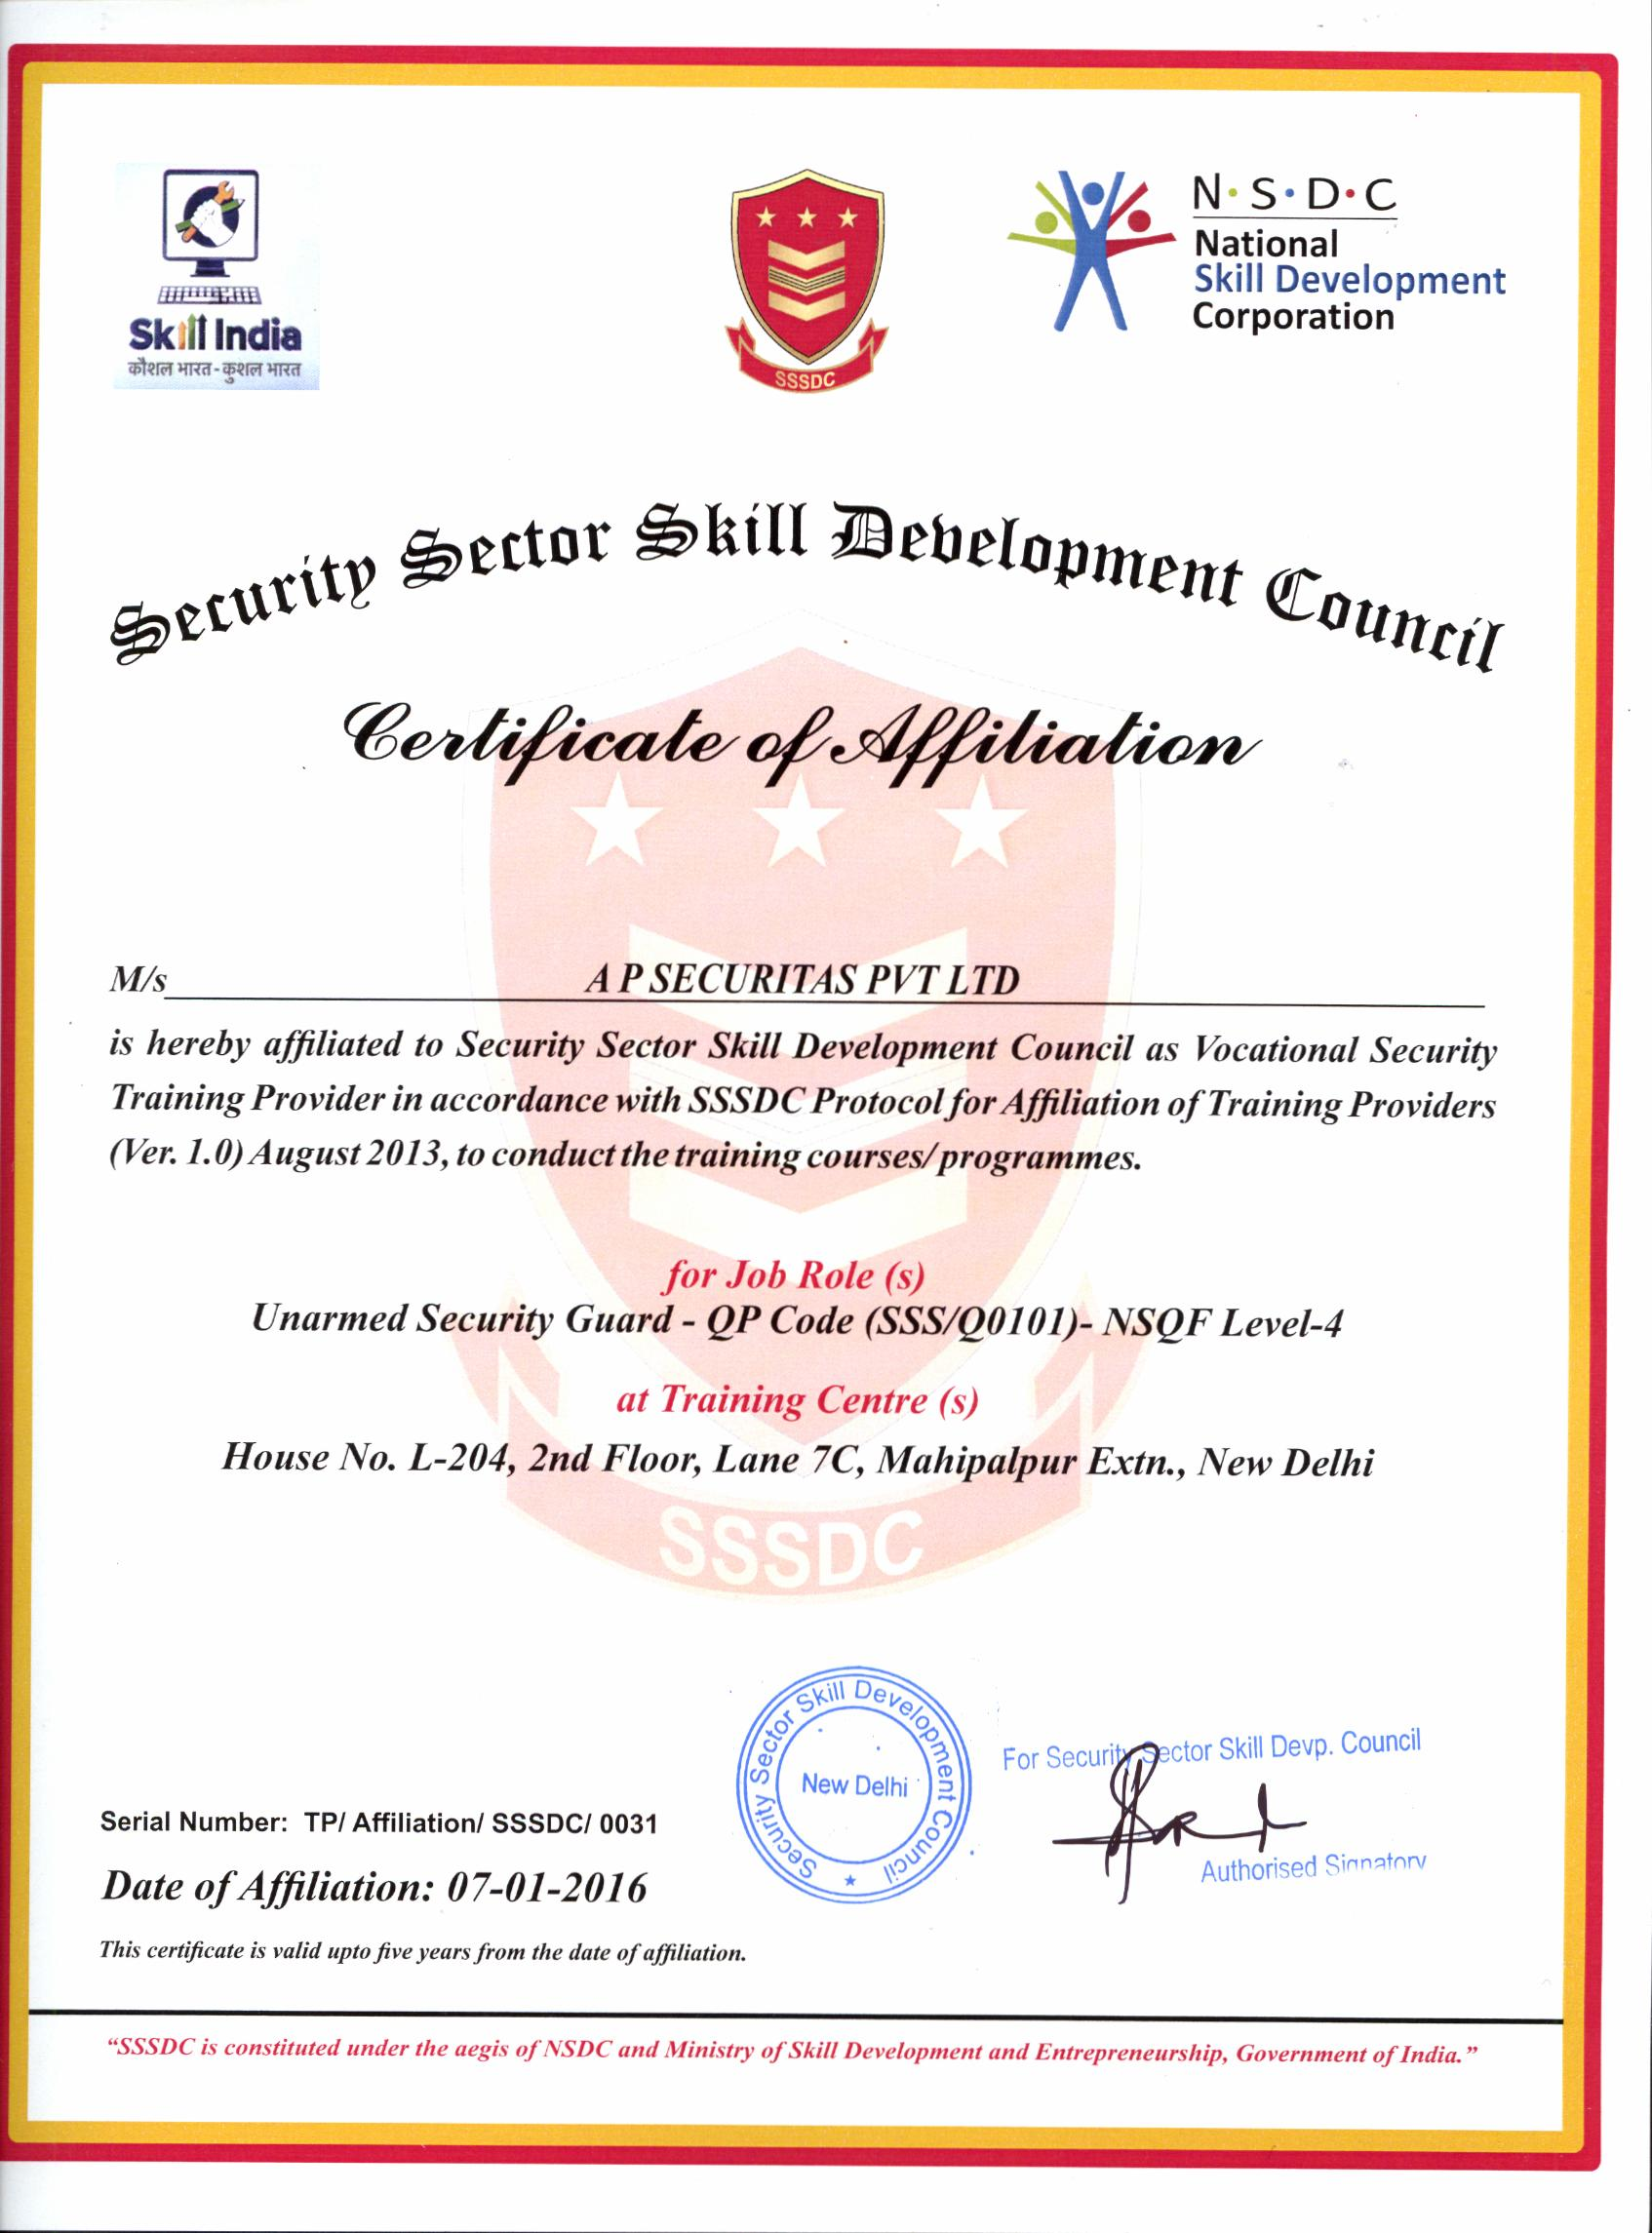 Aps group a p securitas pvt ltd have affiliated to security sector skill development council as vocational security training provider in accordance with sssdc yadclub Gallery